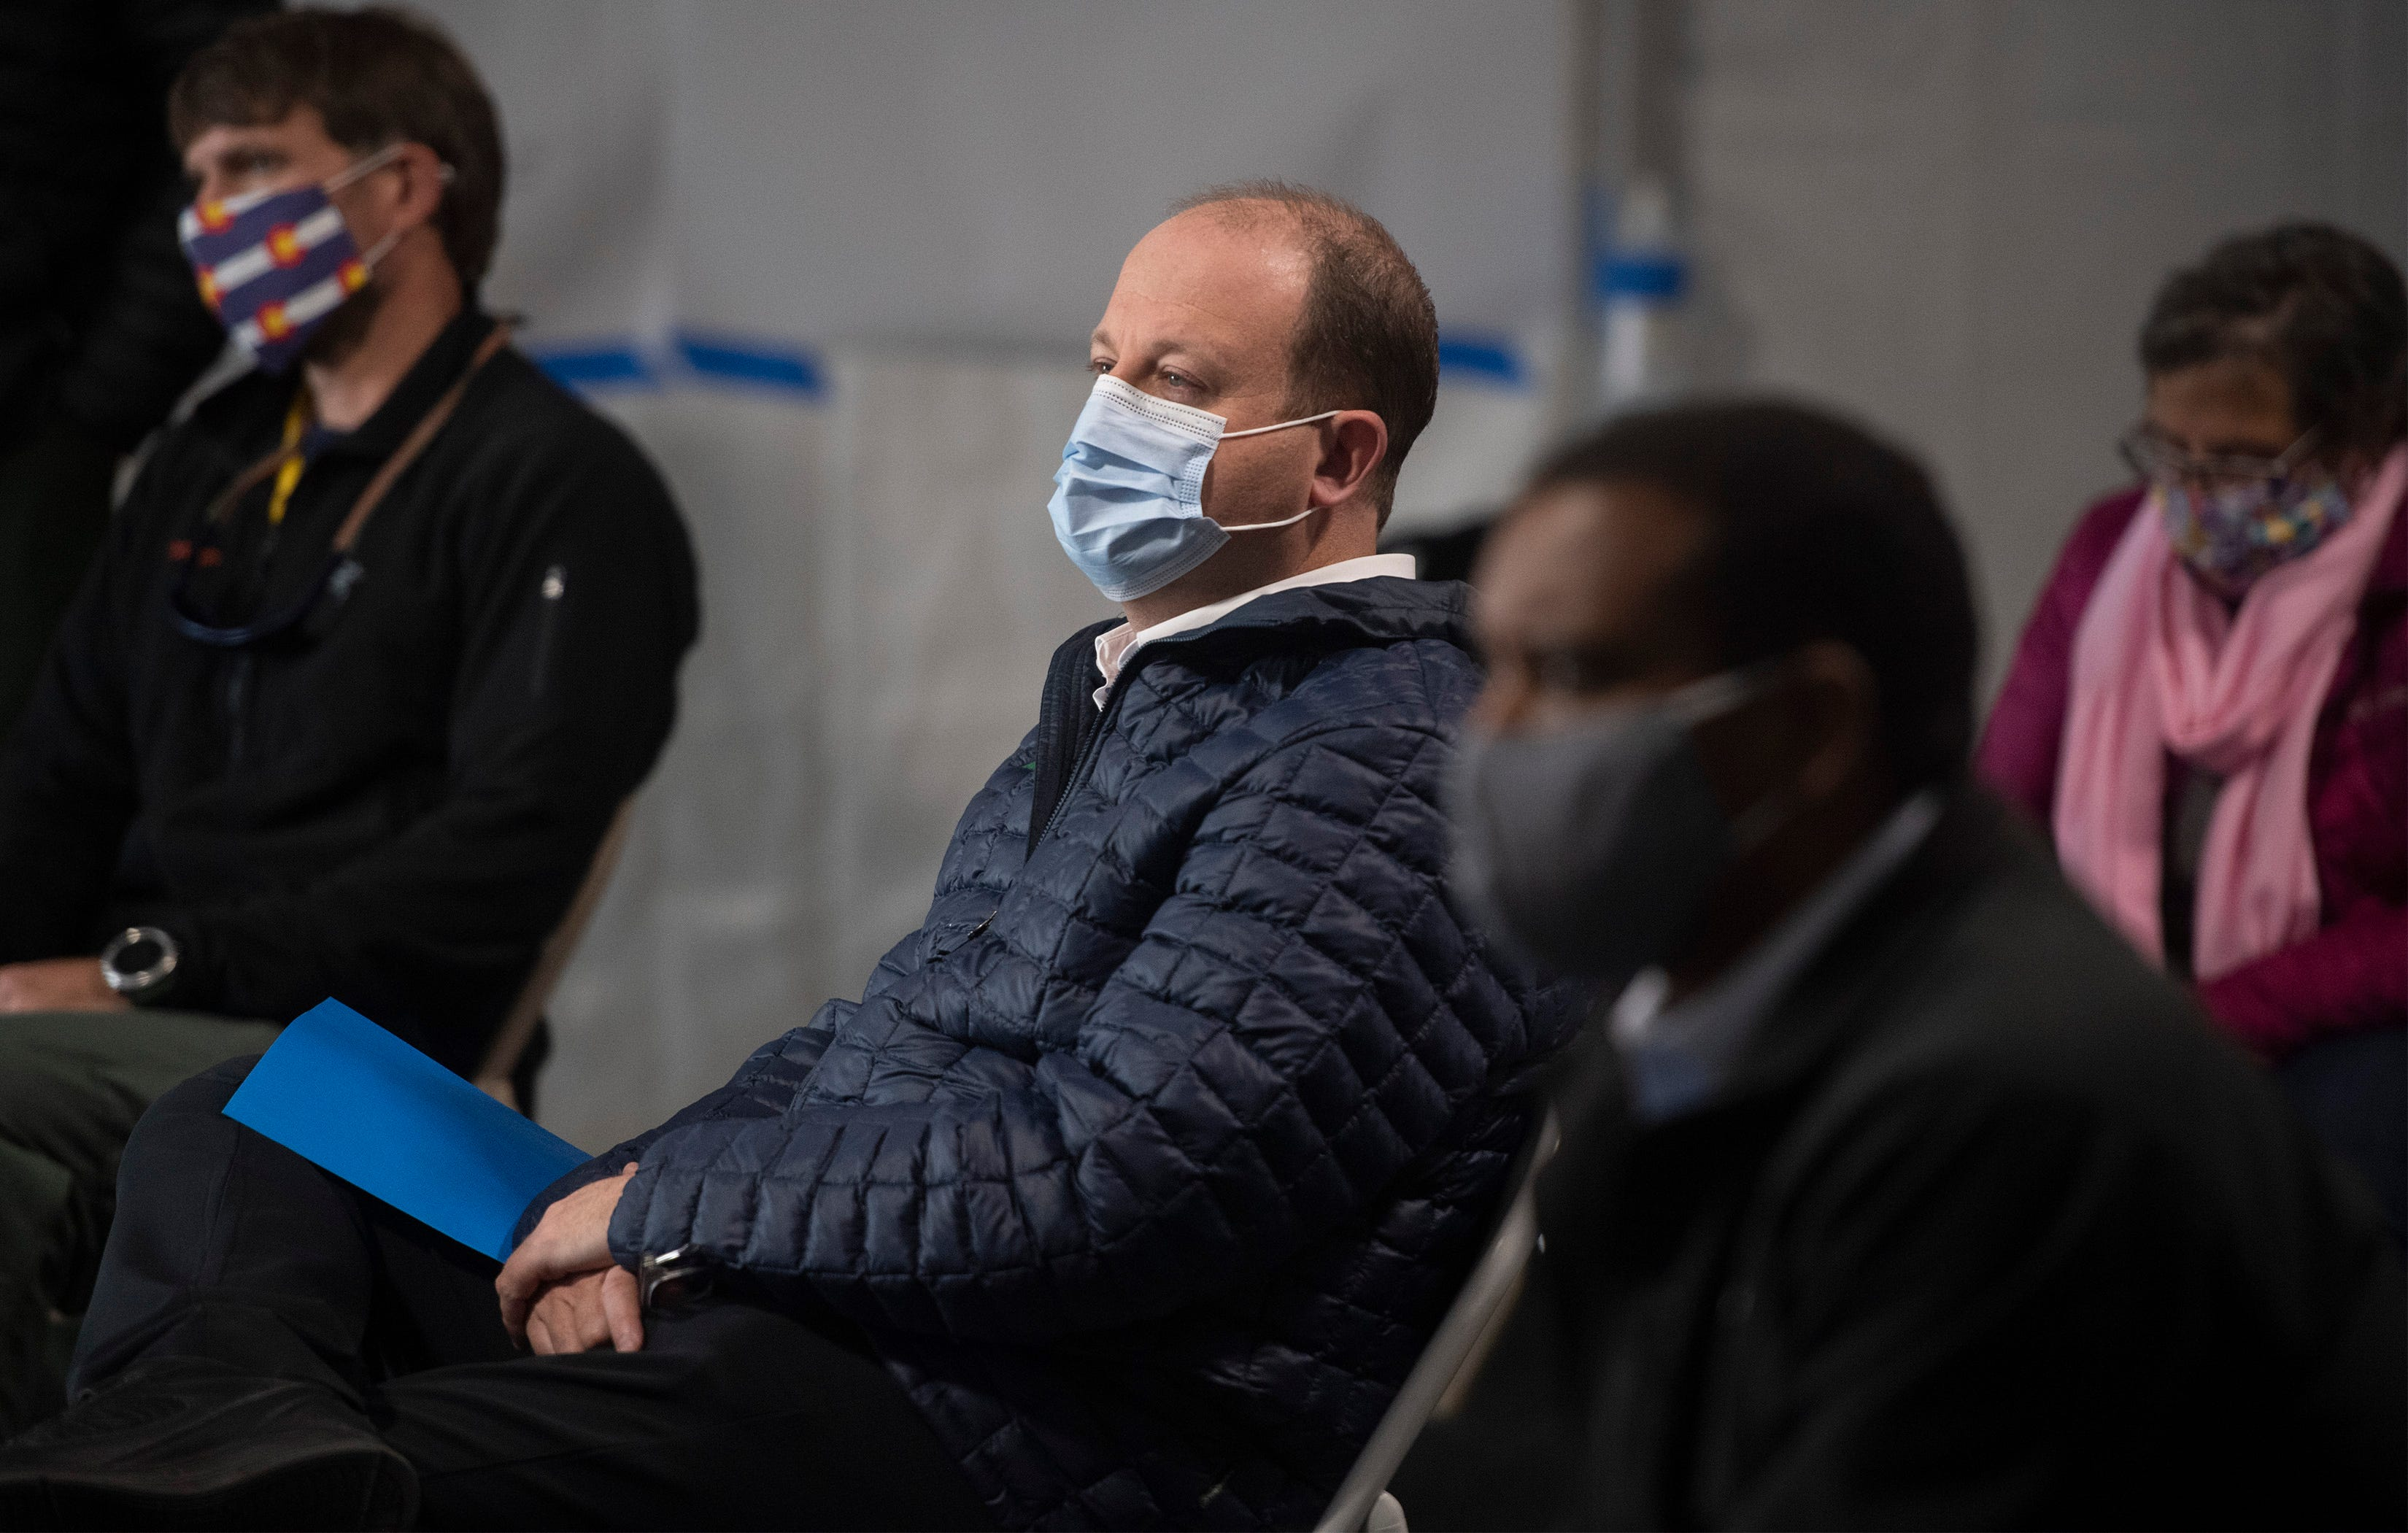 Colorado Gov. Jared Polis tests positive for COVID-19